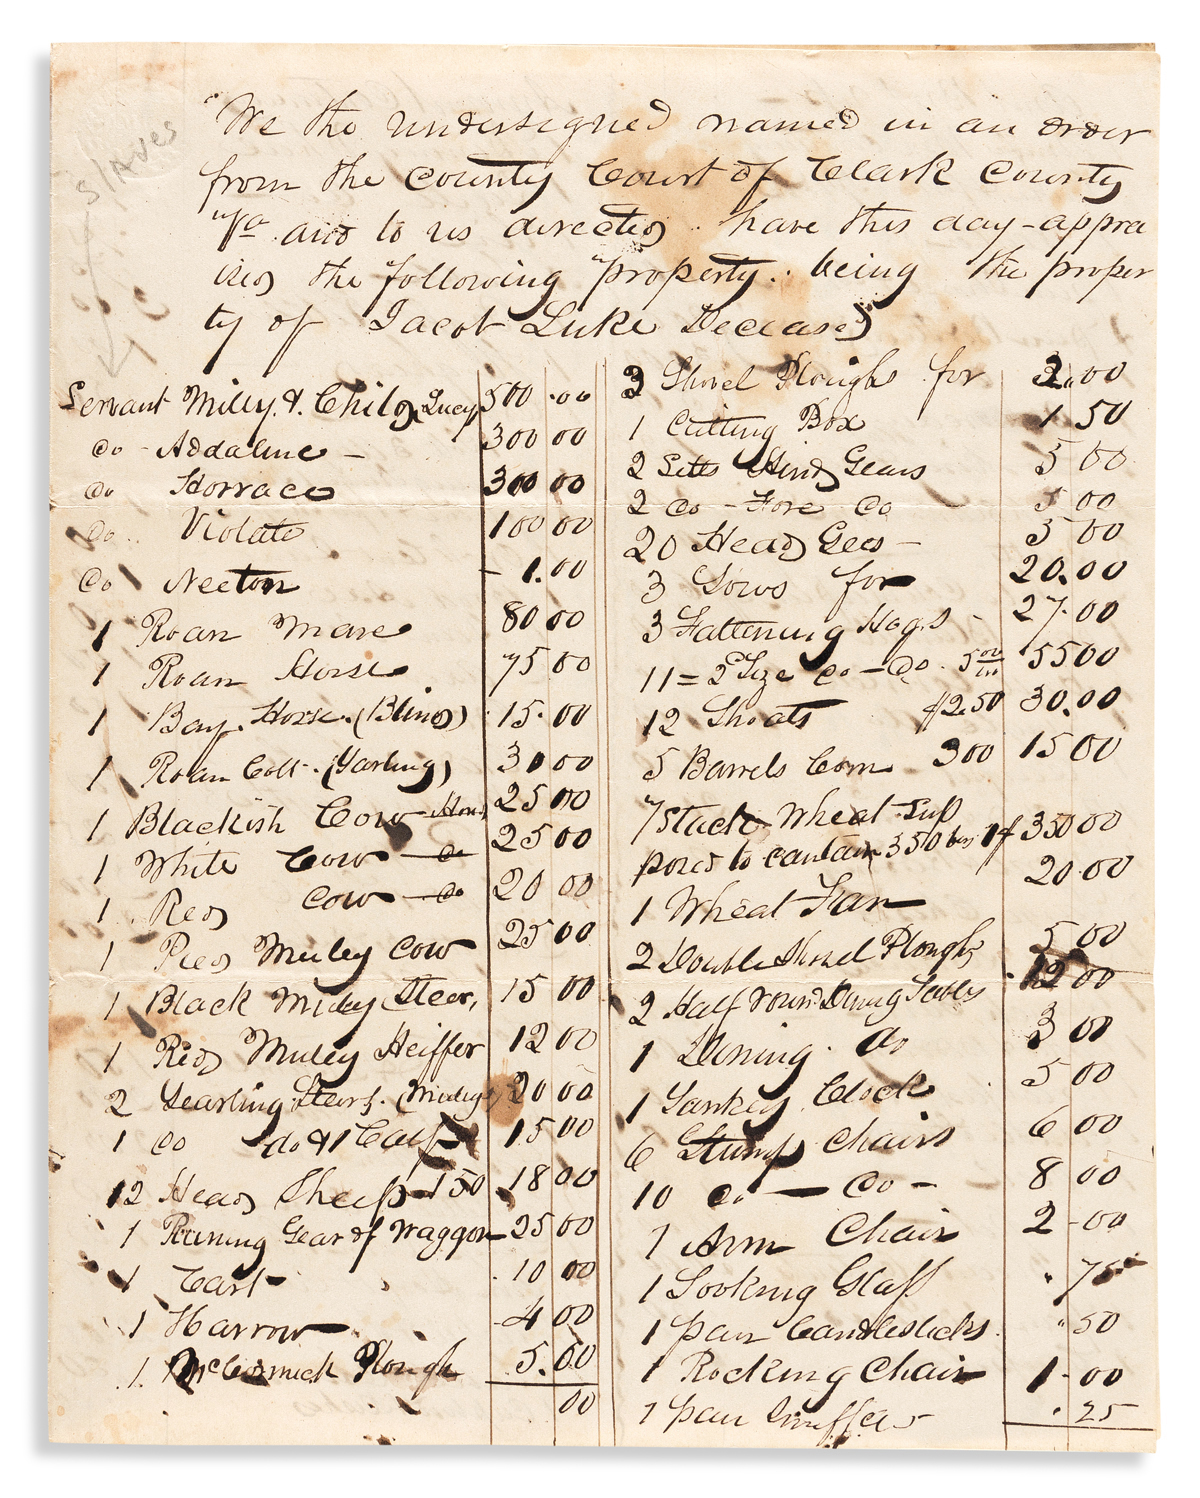 (SLAVERY AND ABOLITION.) Papers of slaveowner John W. Luke of Berryville, Virginia.